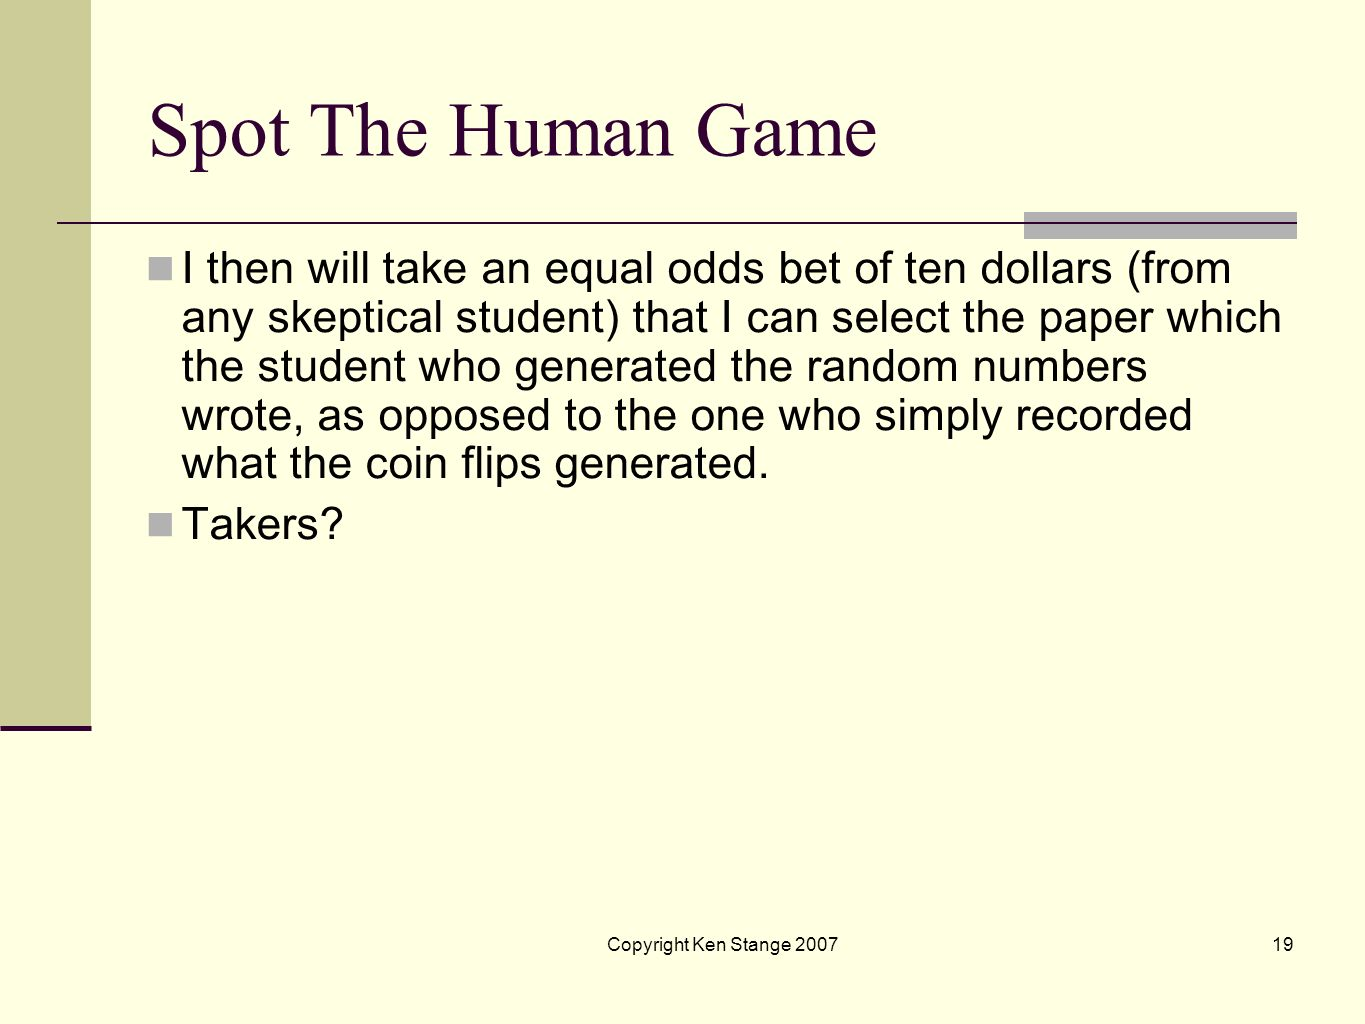 Copyright Ken Stange 200718 Spot The Human Game For any Skeptic still doubting my psychic ability, I will now demonstrate the ability to feel residual